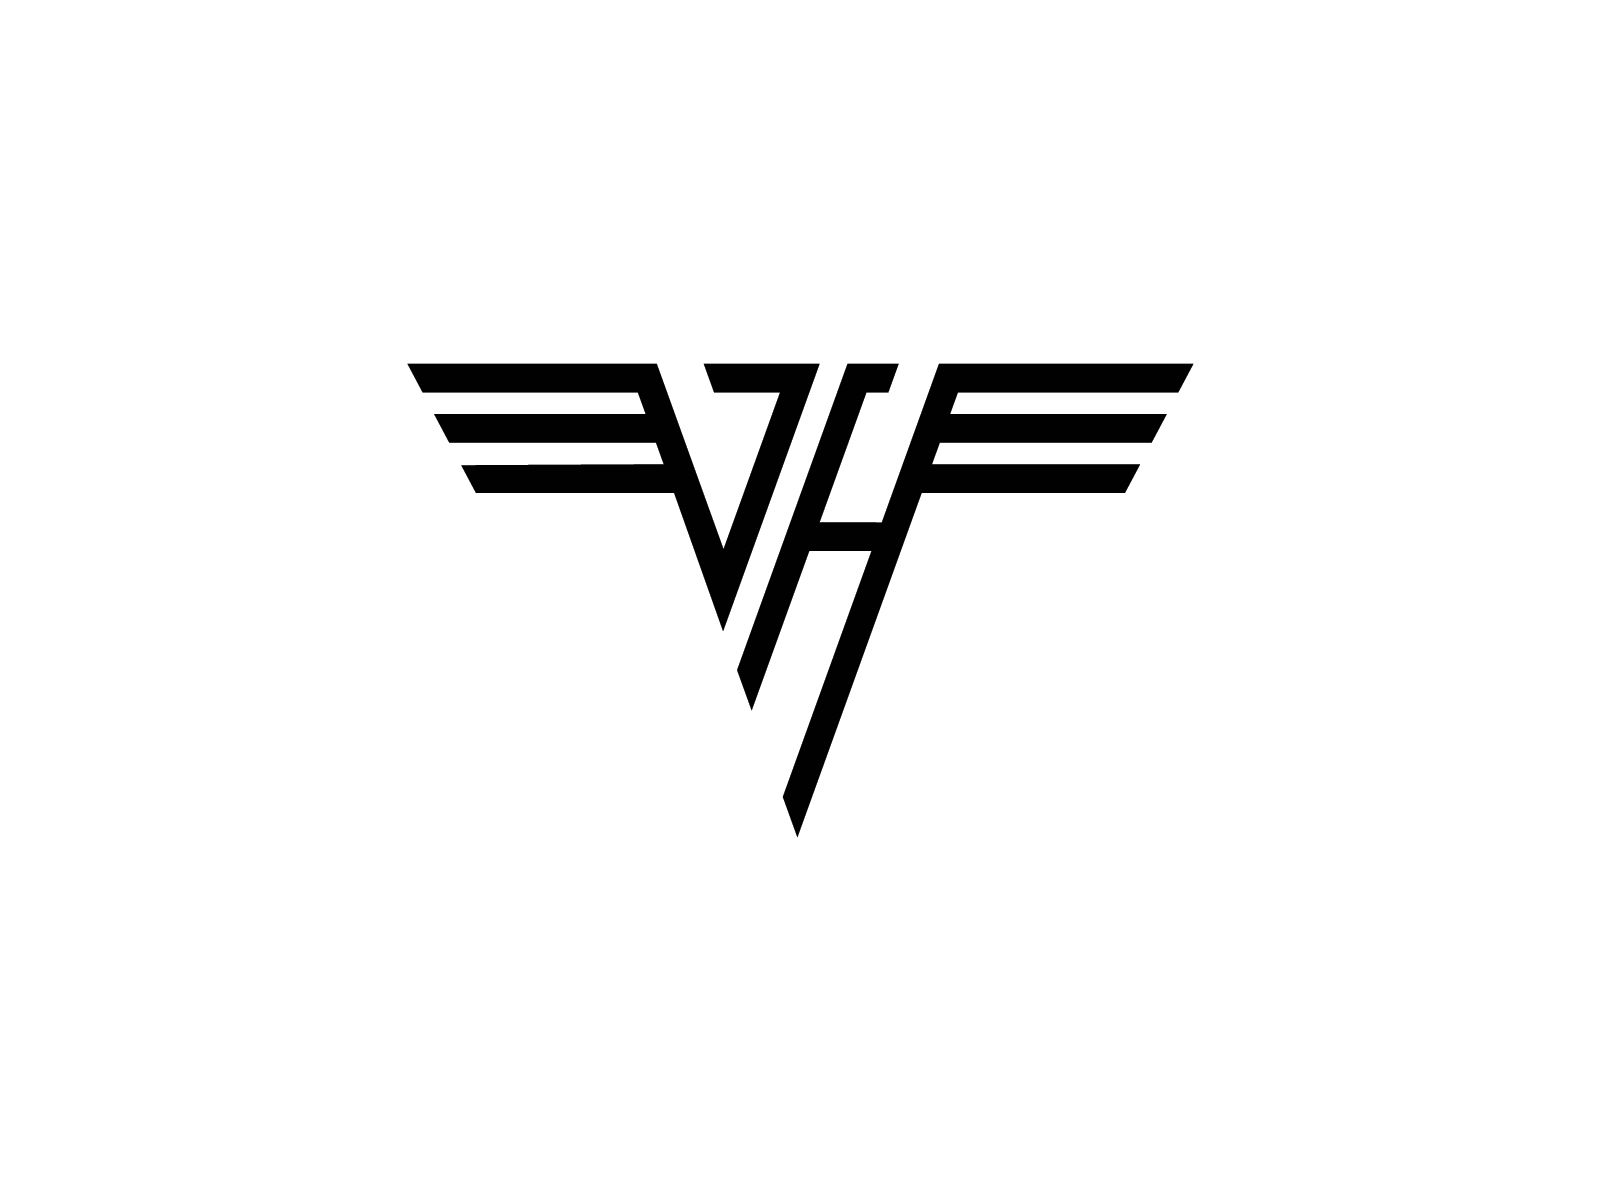 van halen logo and wallpaper van halen rock band logos and google rh pinterest com Death Metal Band Logos heavy metal band logo creator free